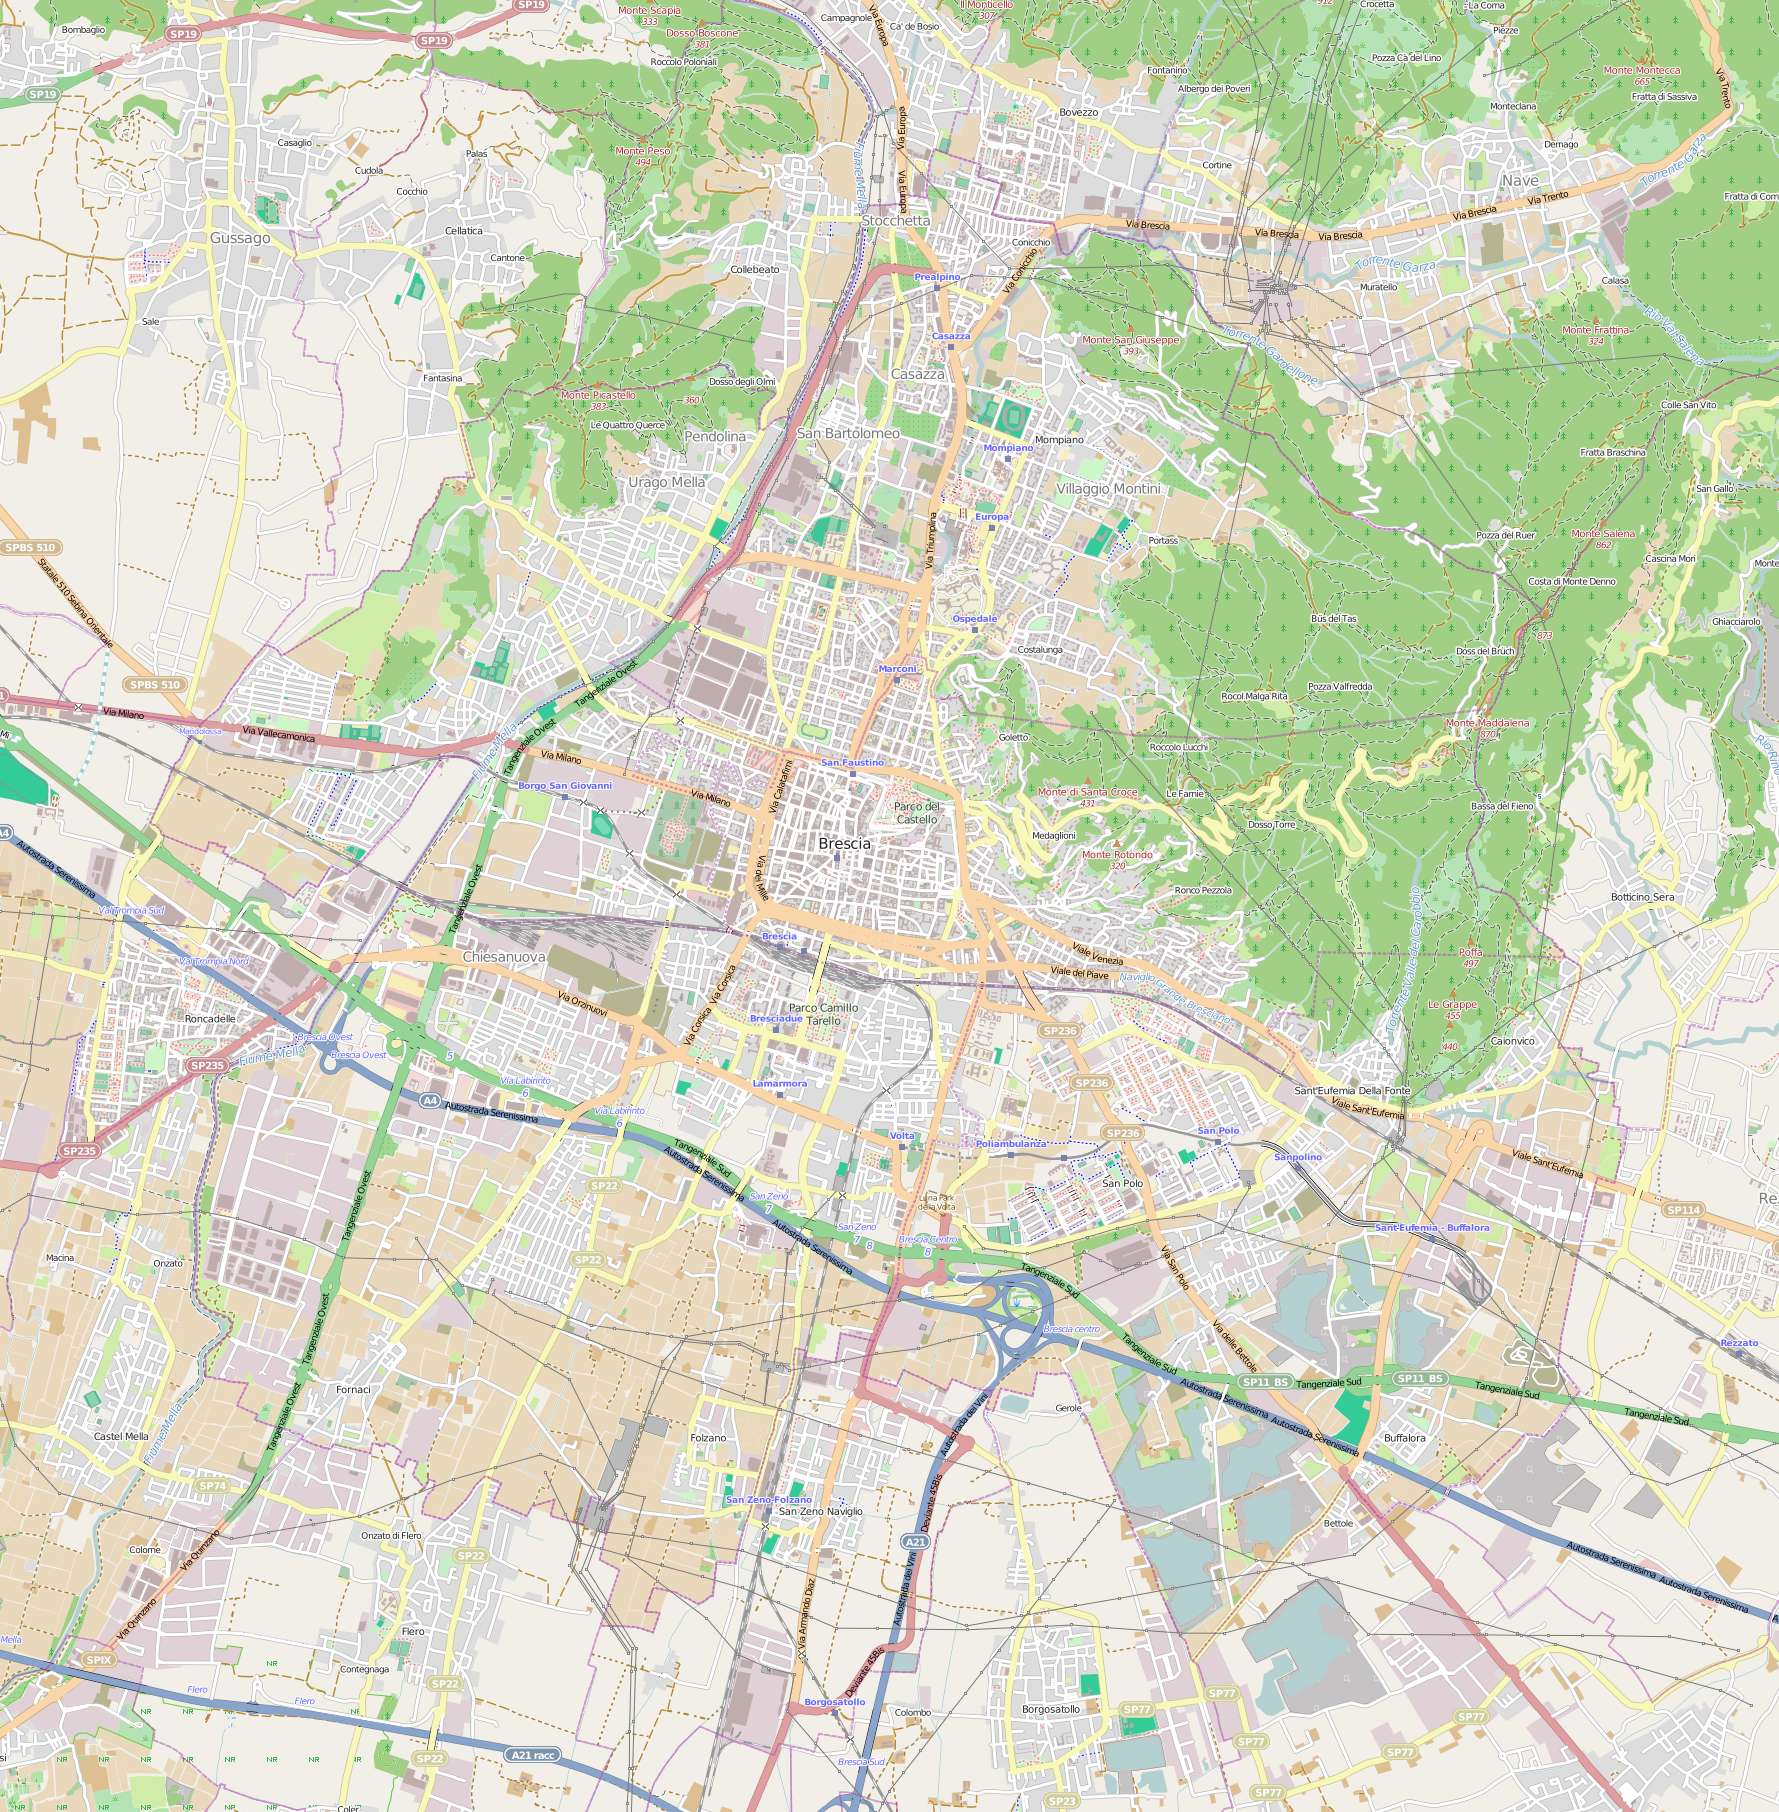 FileLocation map Italy Bresciapng Wikimedia Commons